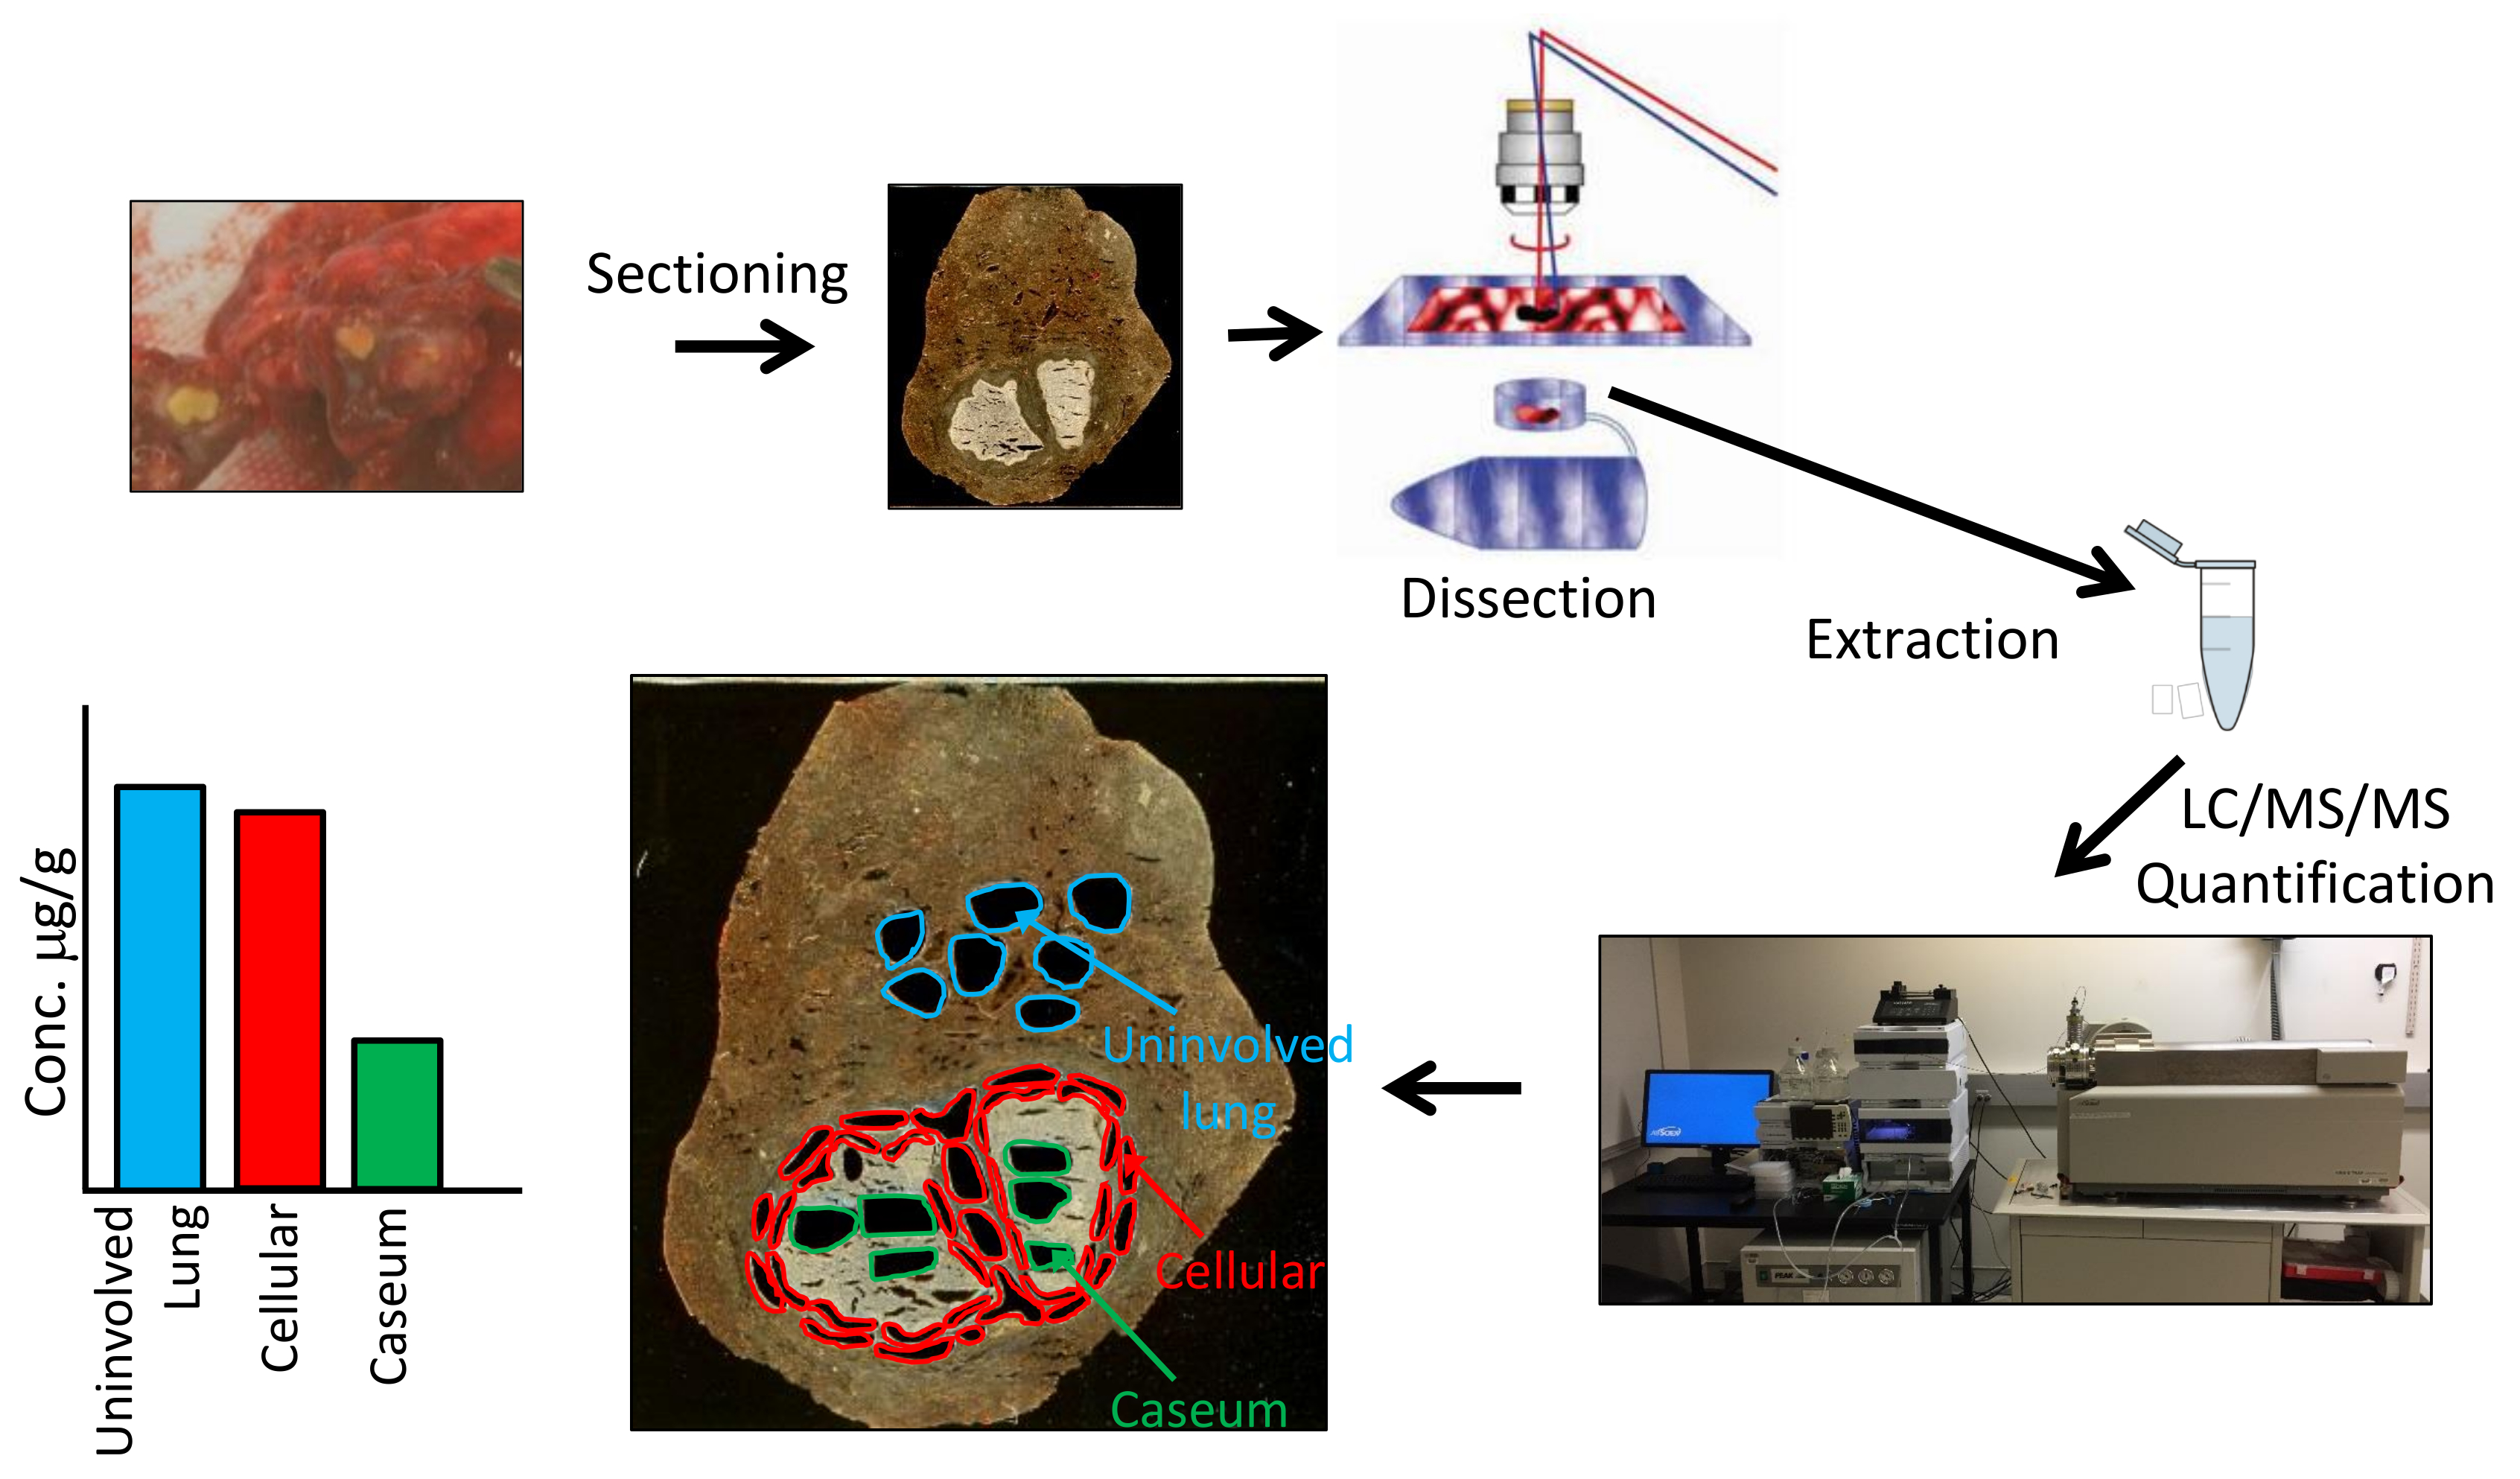 Spatial Quantification of Drugs in Pulmonary Tuberculosis Lesions by